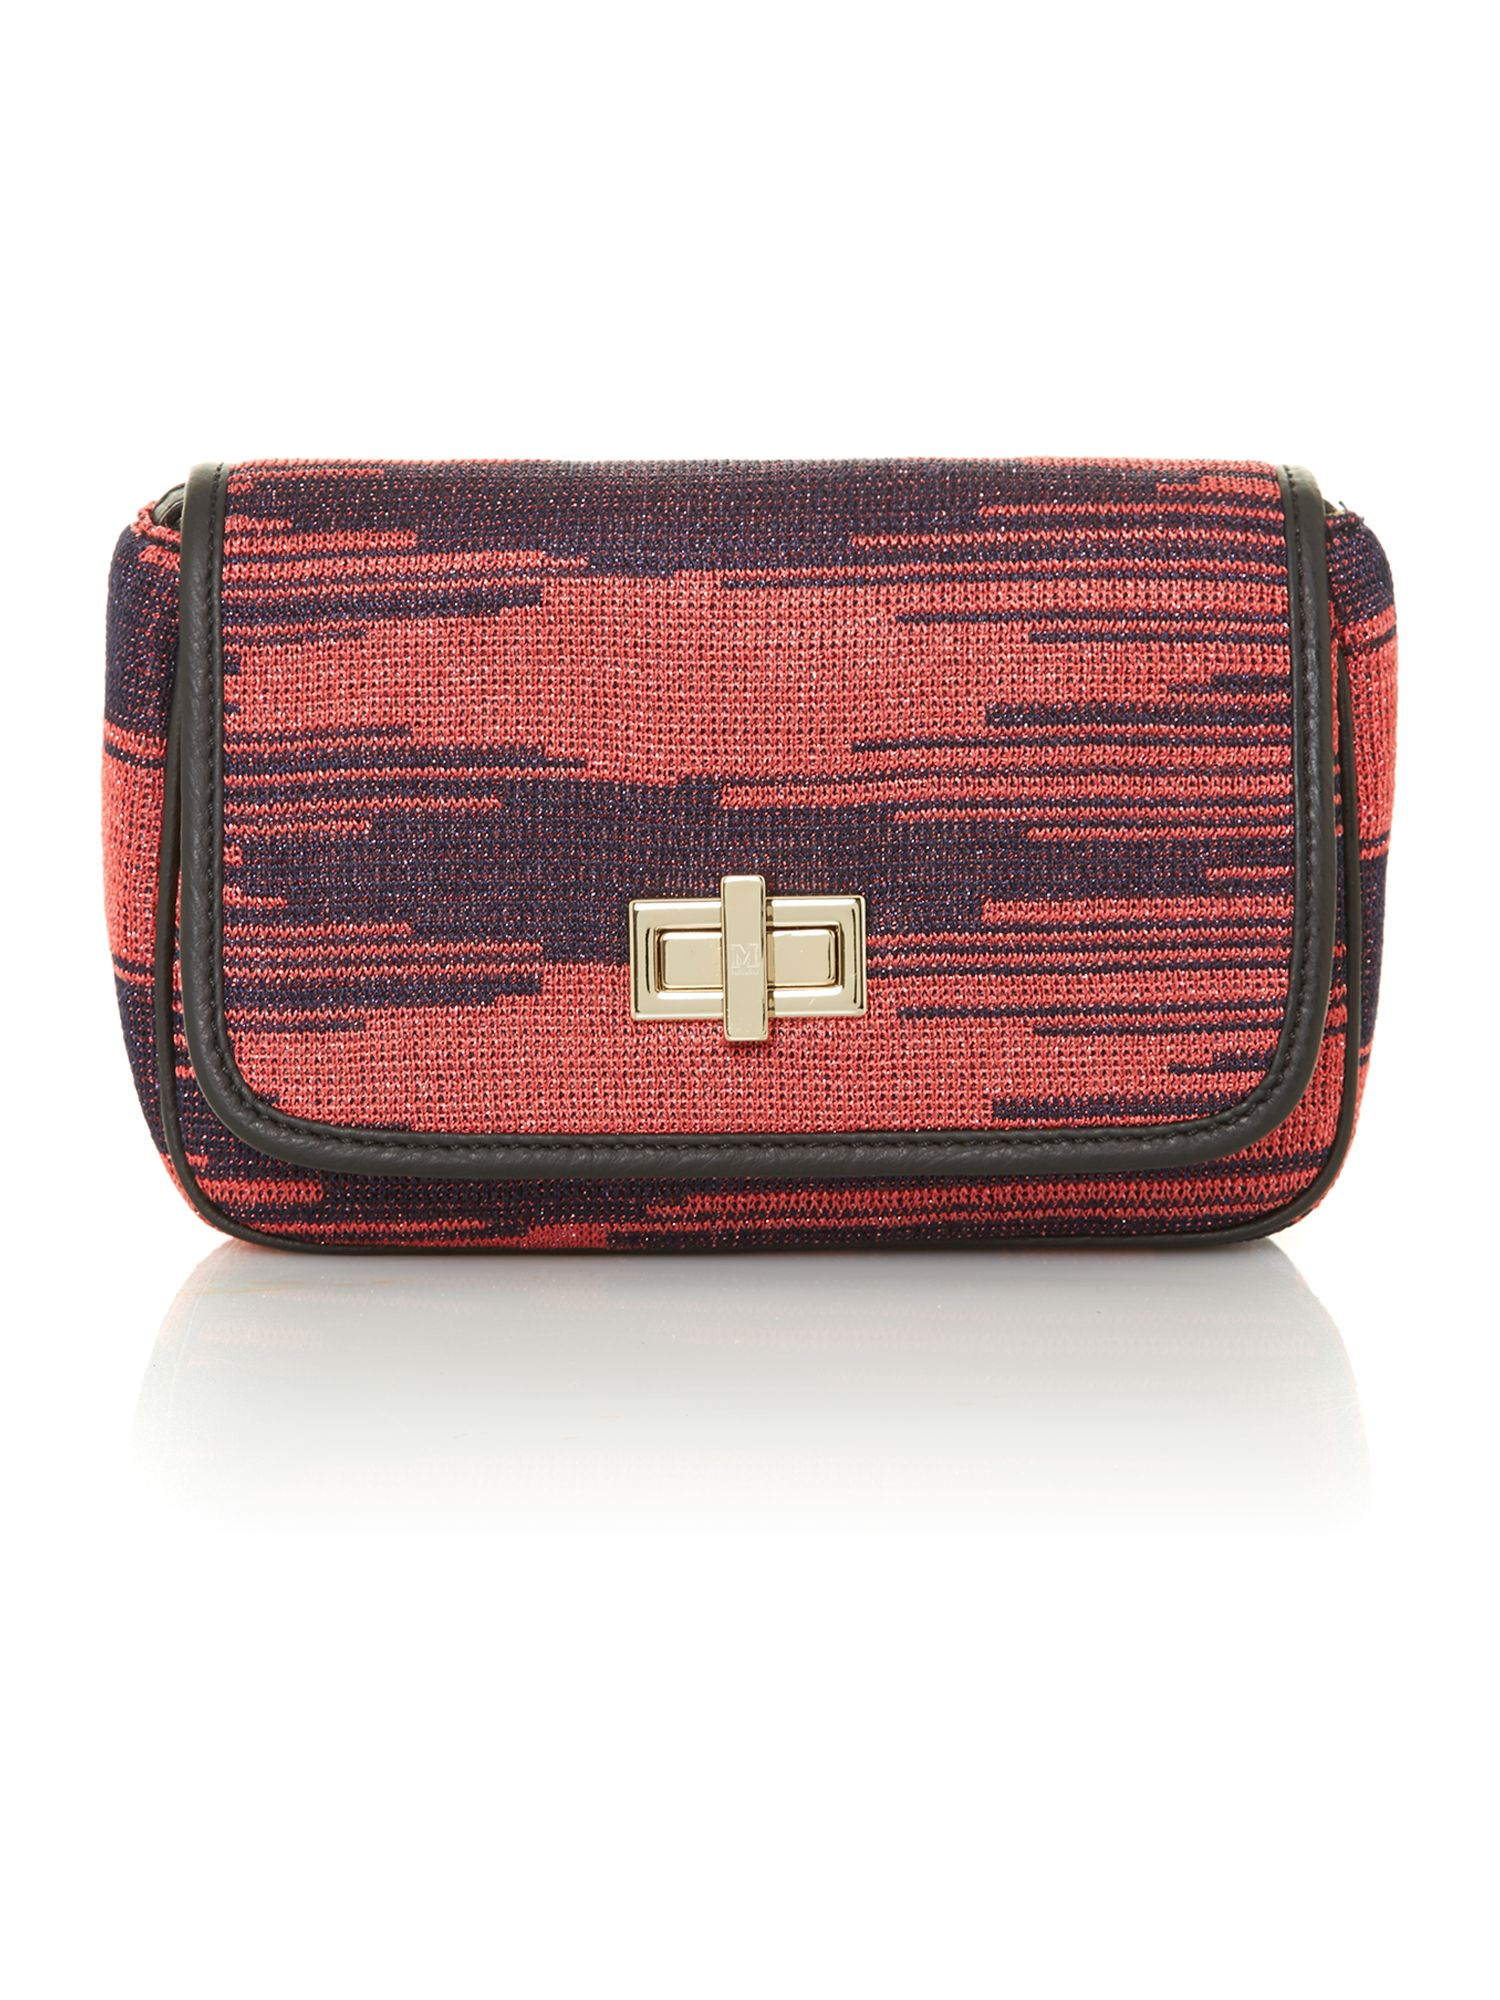 Multi-coloured print cross body bag